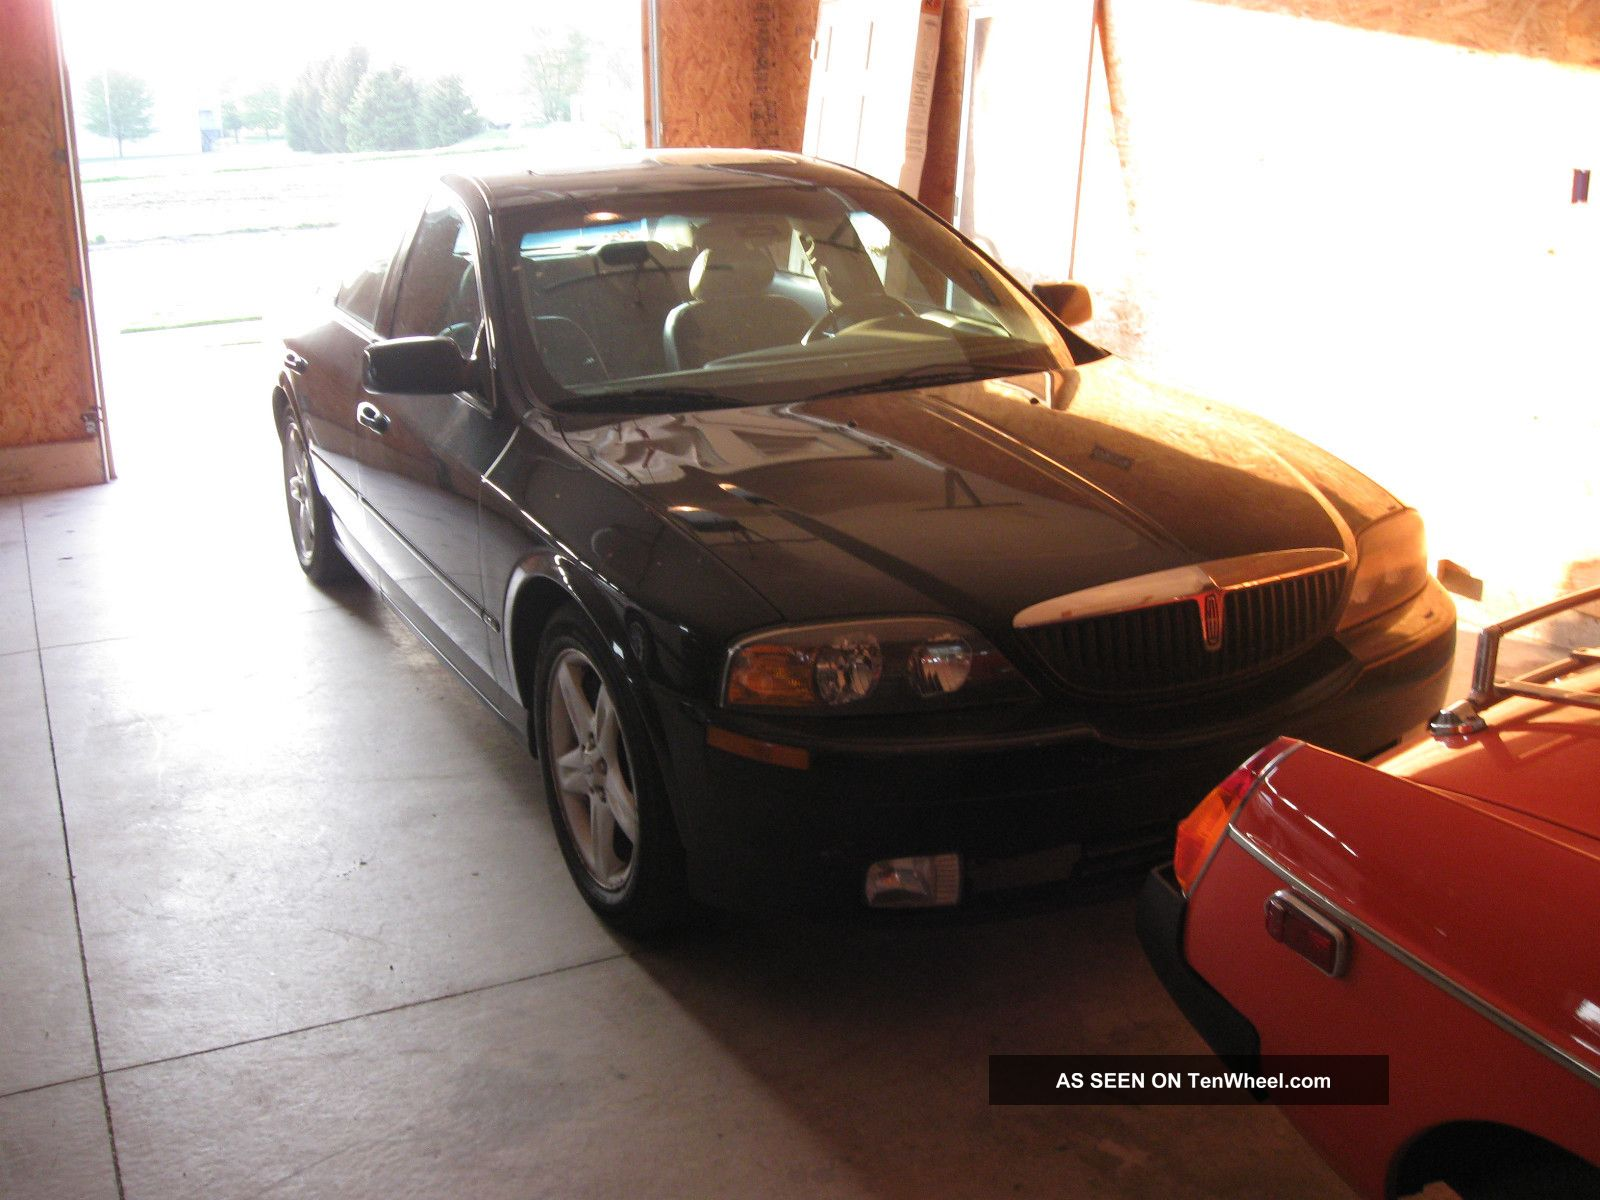 2000 Lincoln Ls 5 Speed Stick Shift Black On Black LS photo